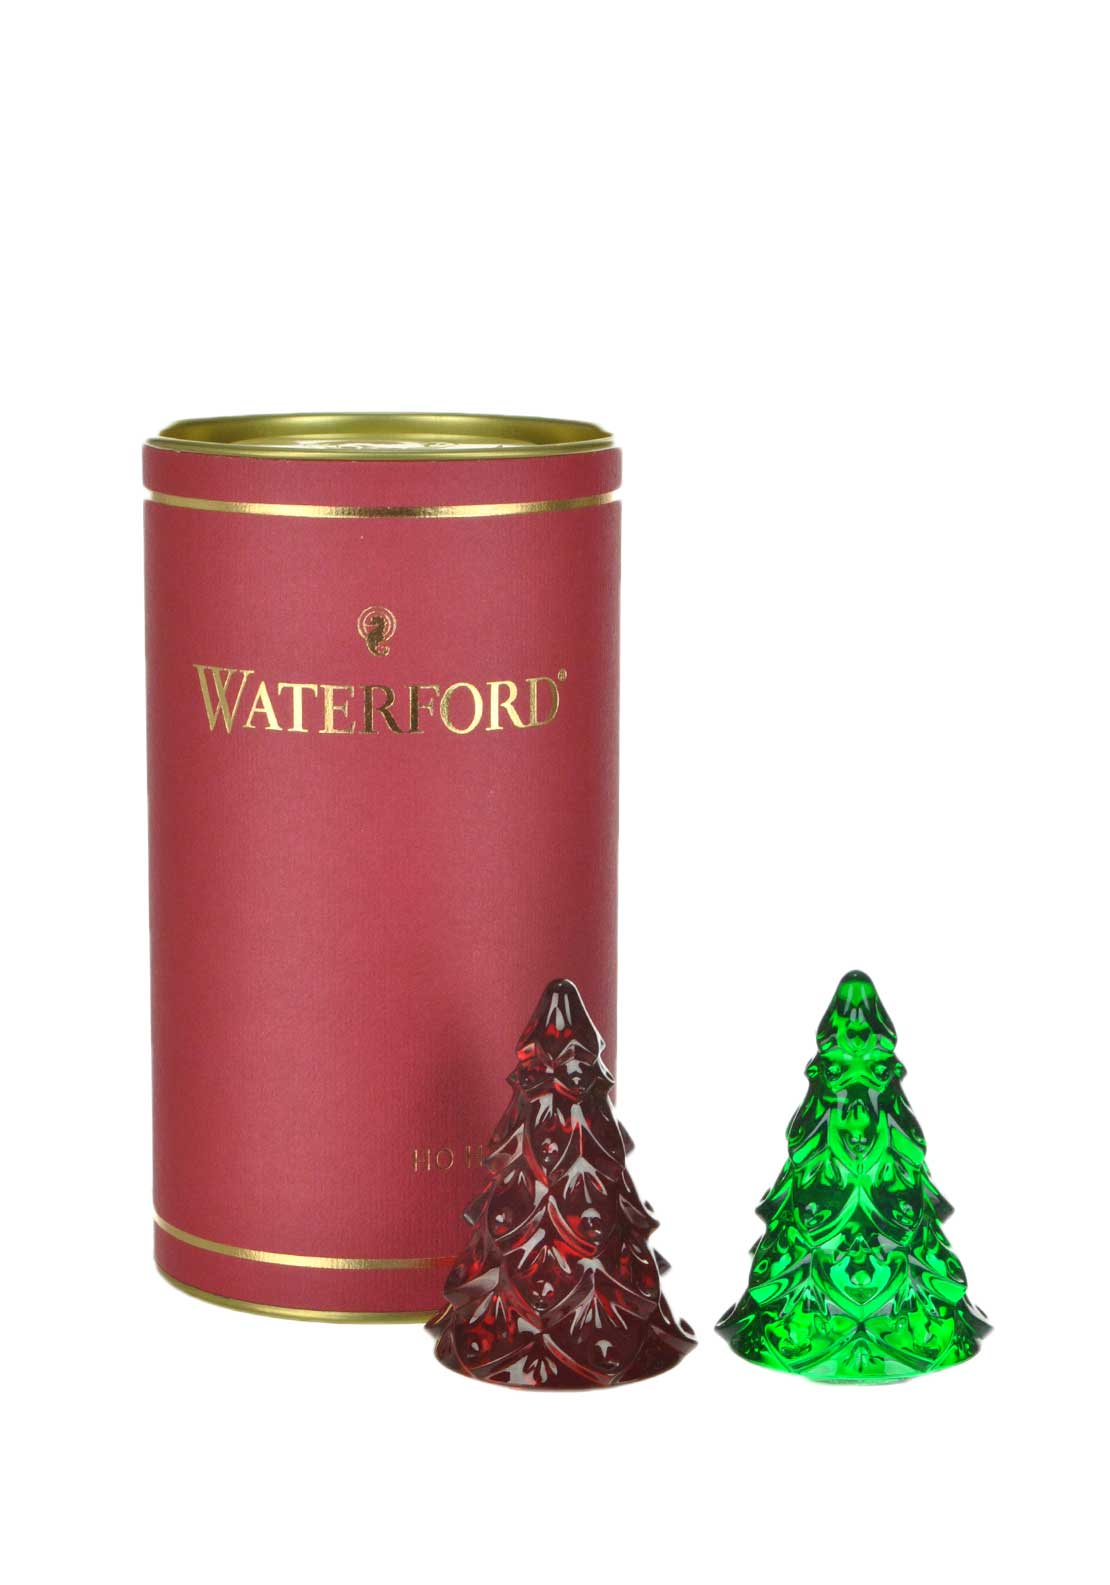 Waterford Crystal Heirloom Christmas Tree Ornaments, set of 2